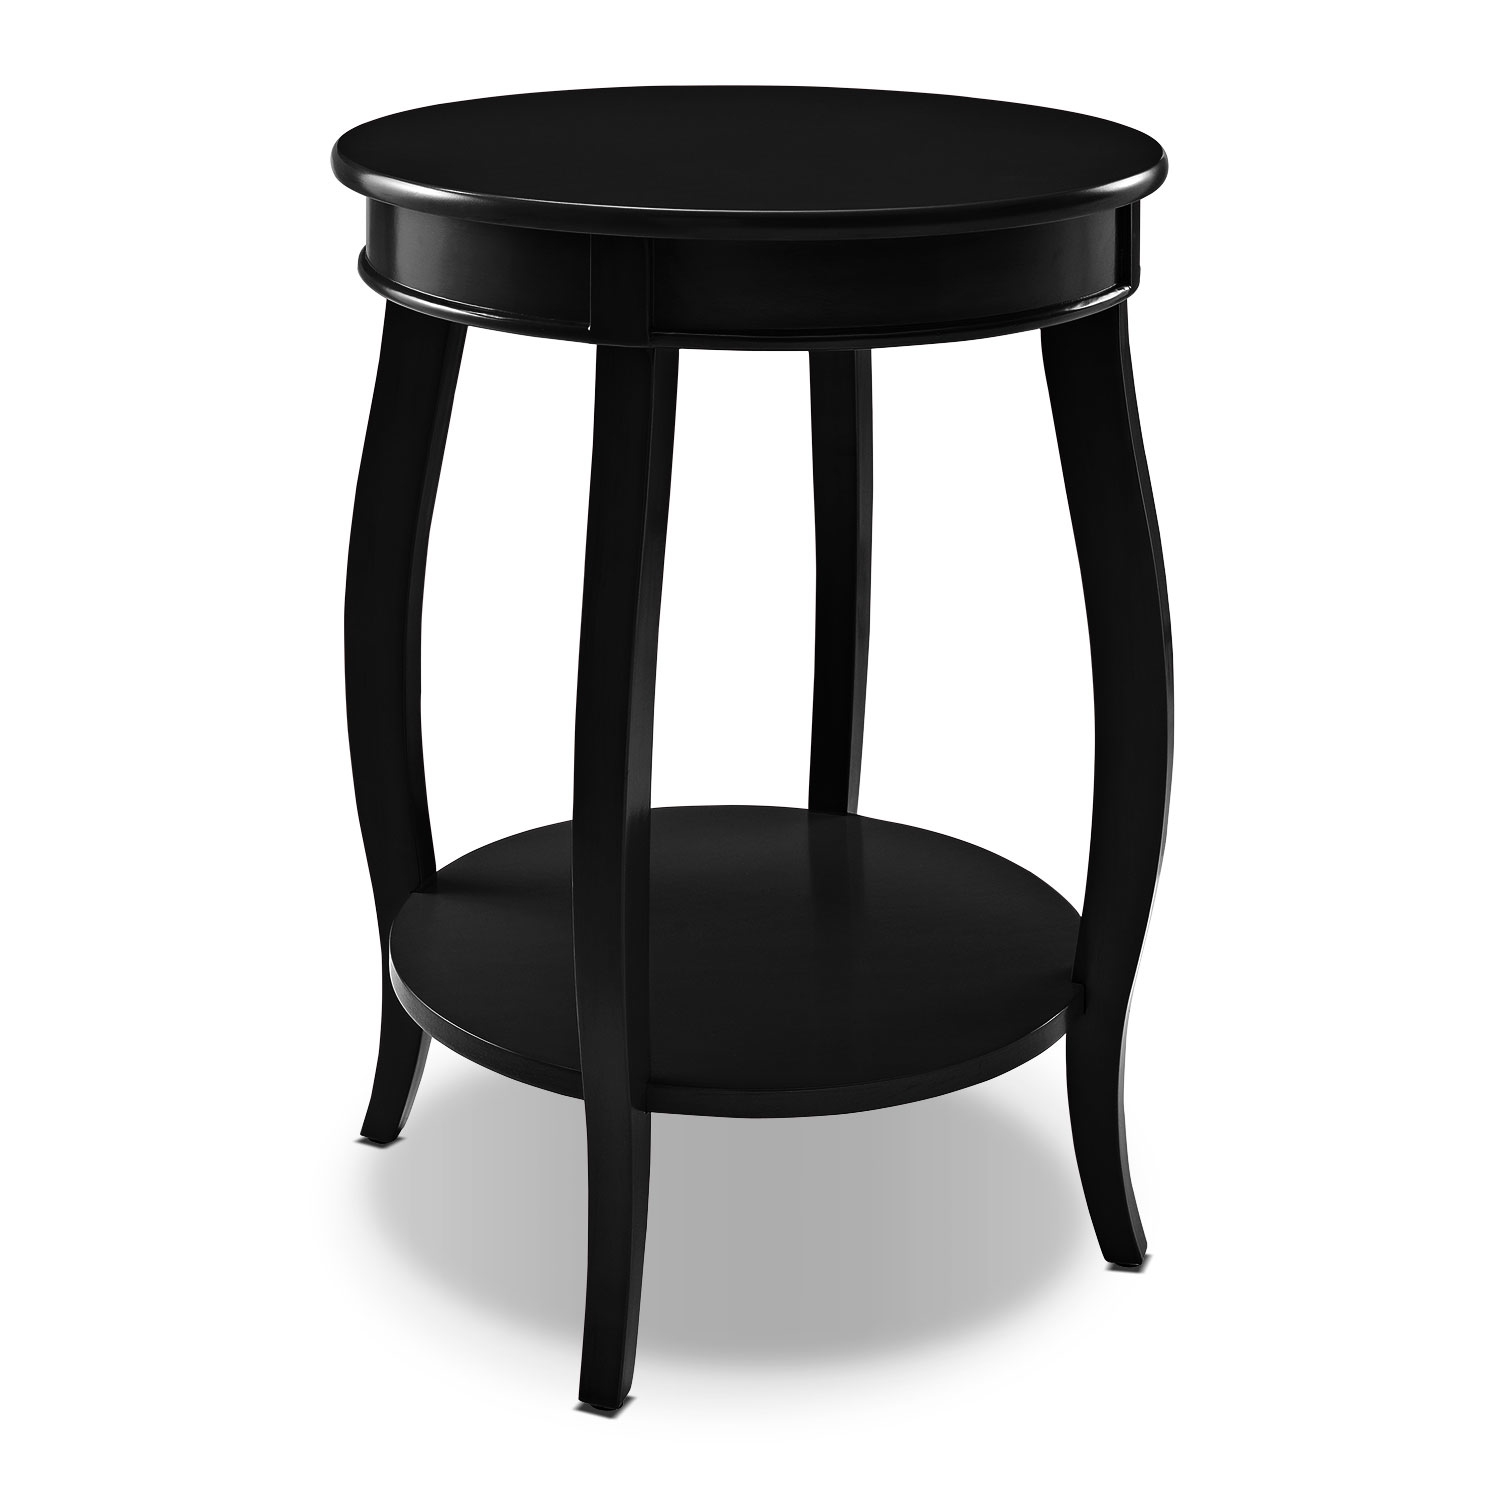 Pictures of end tables for living room sydney accent table - black vxwlhtw